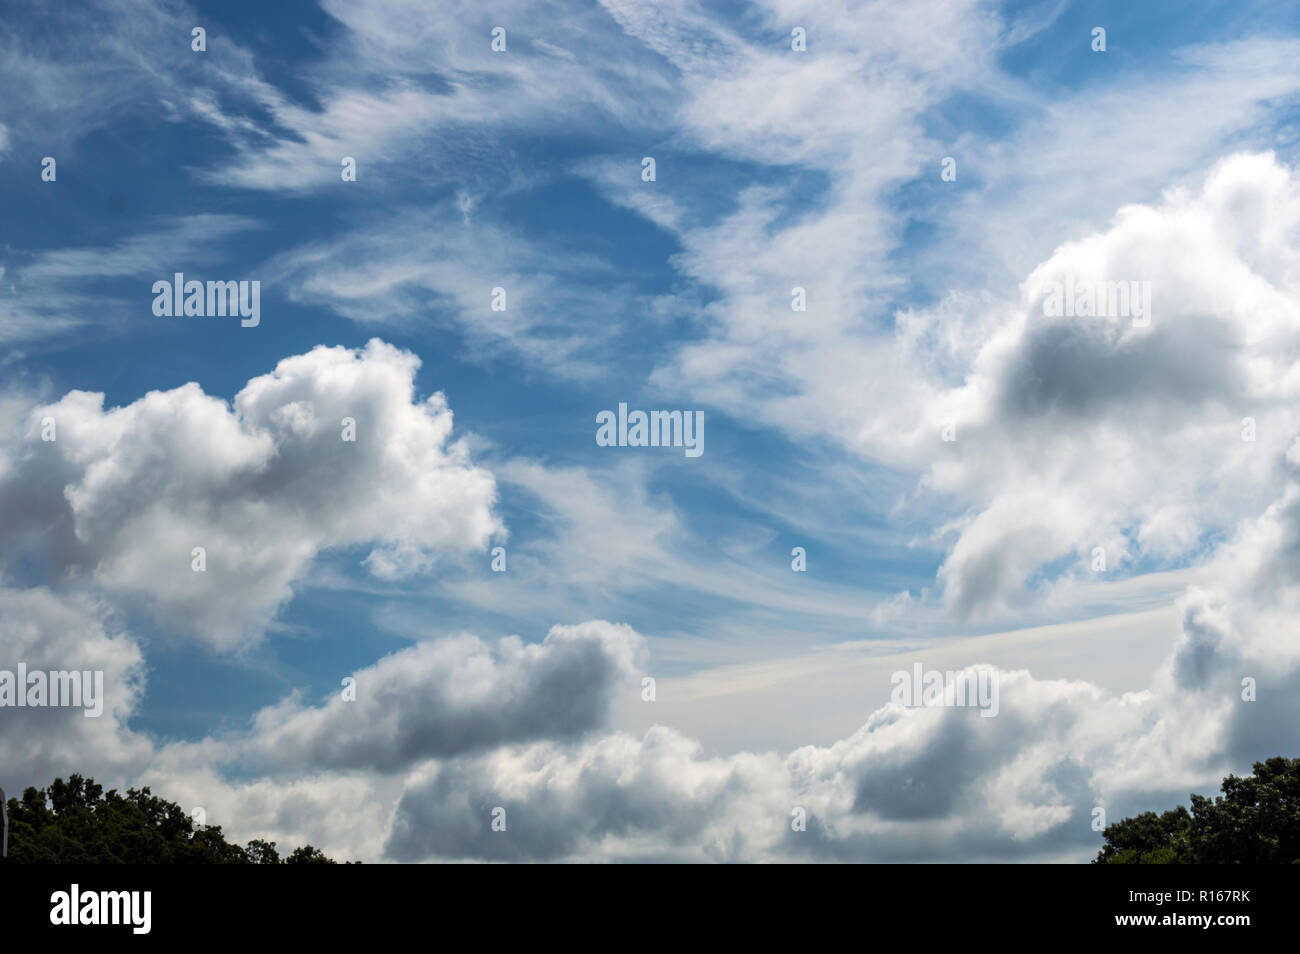 Pretty and peaceful white clouds fill the blue sky just above the tree line on a bright clear day - Stock Image